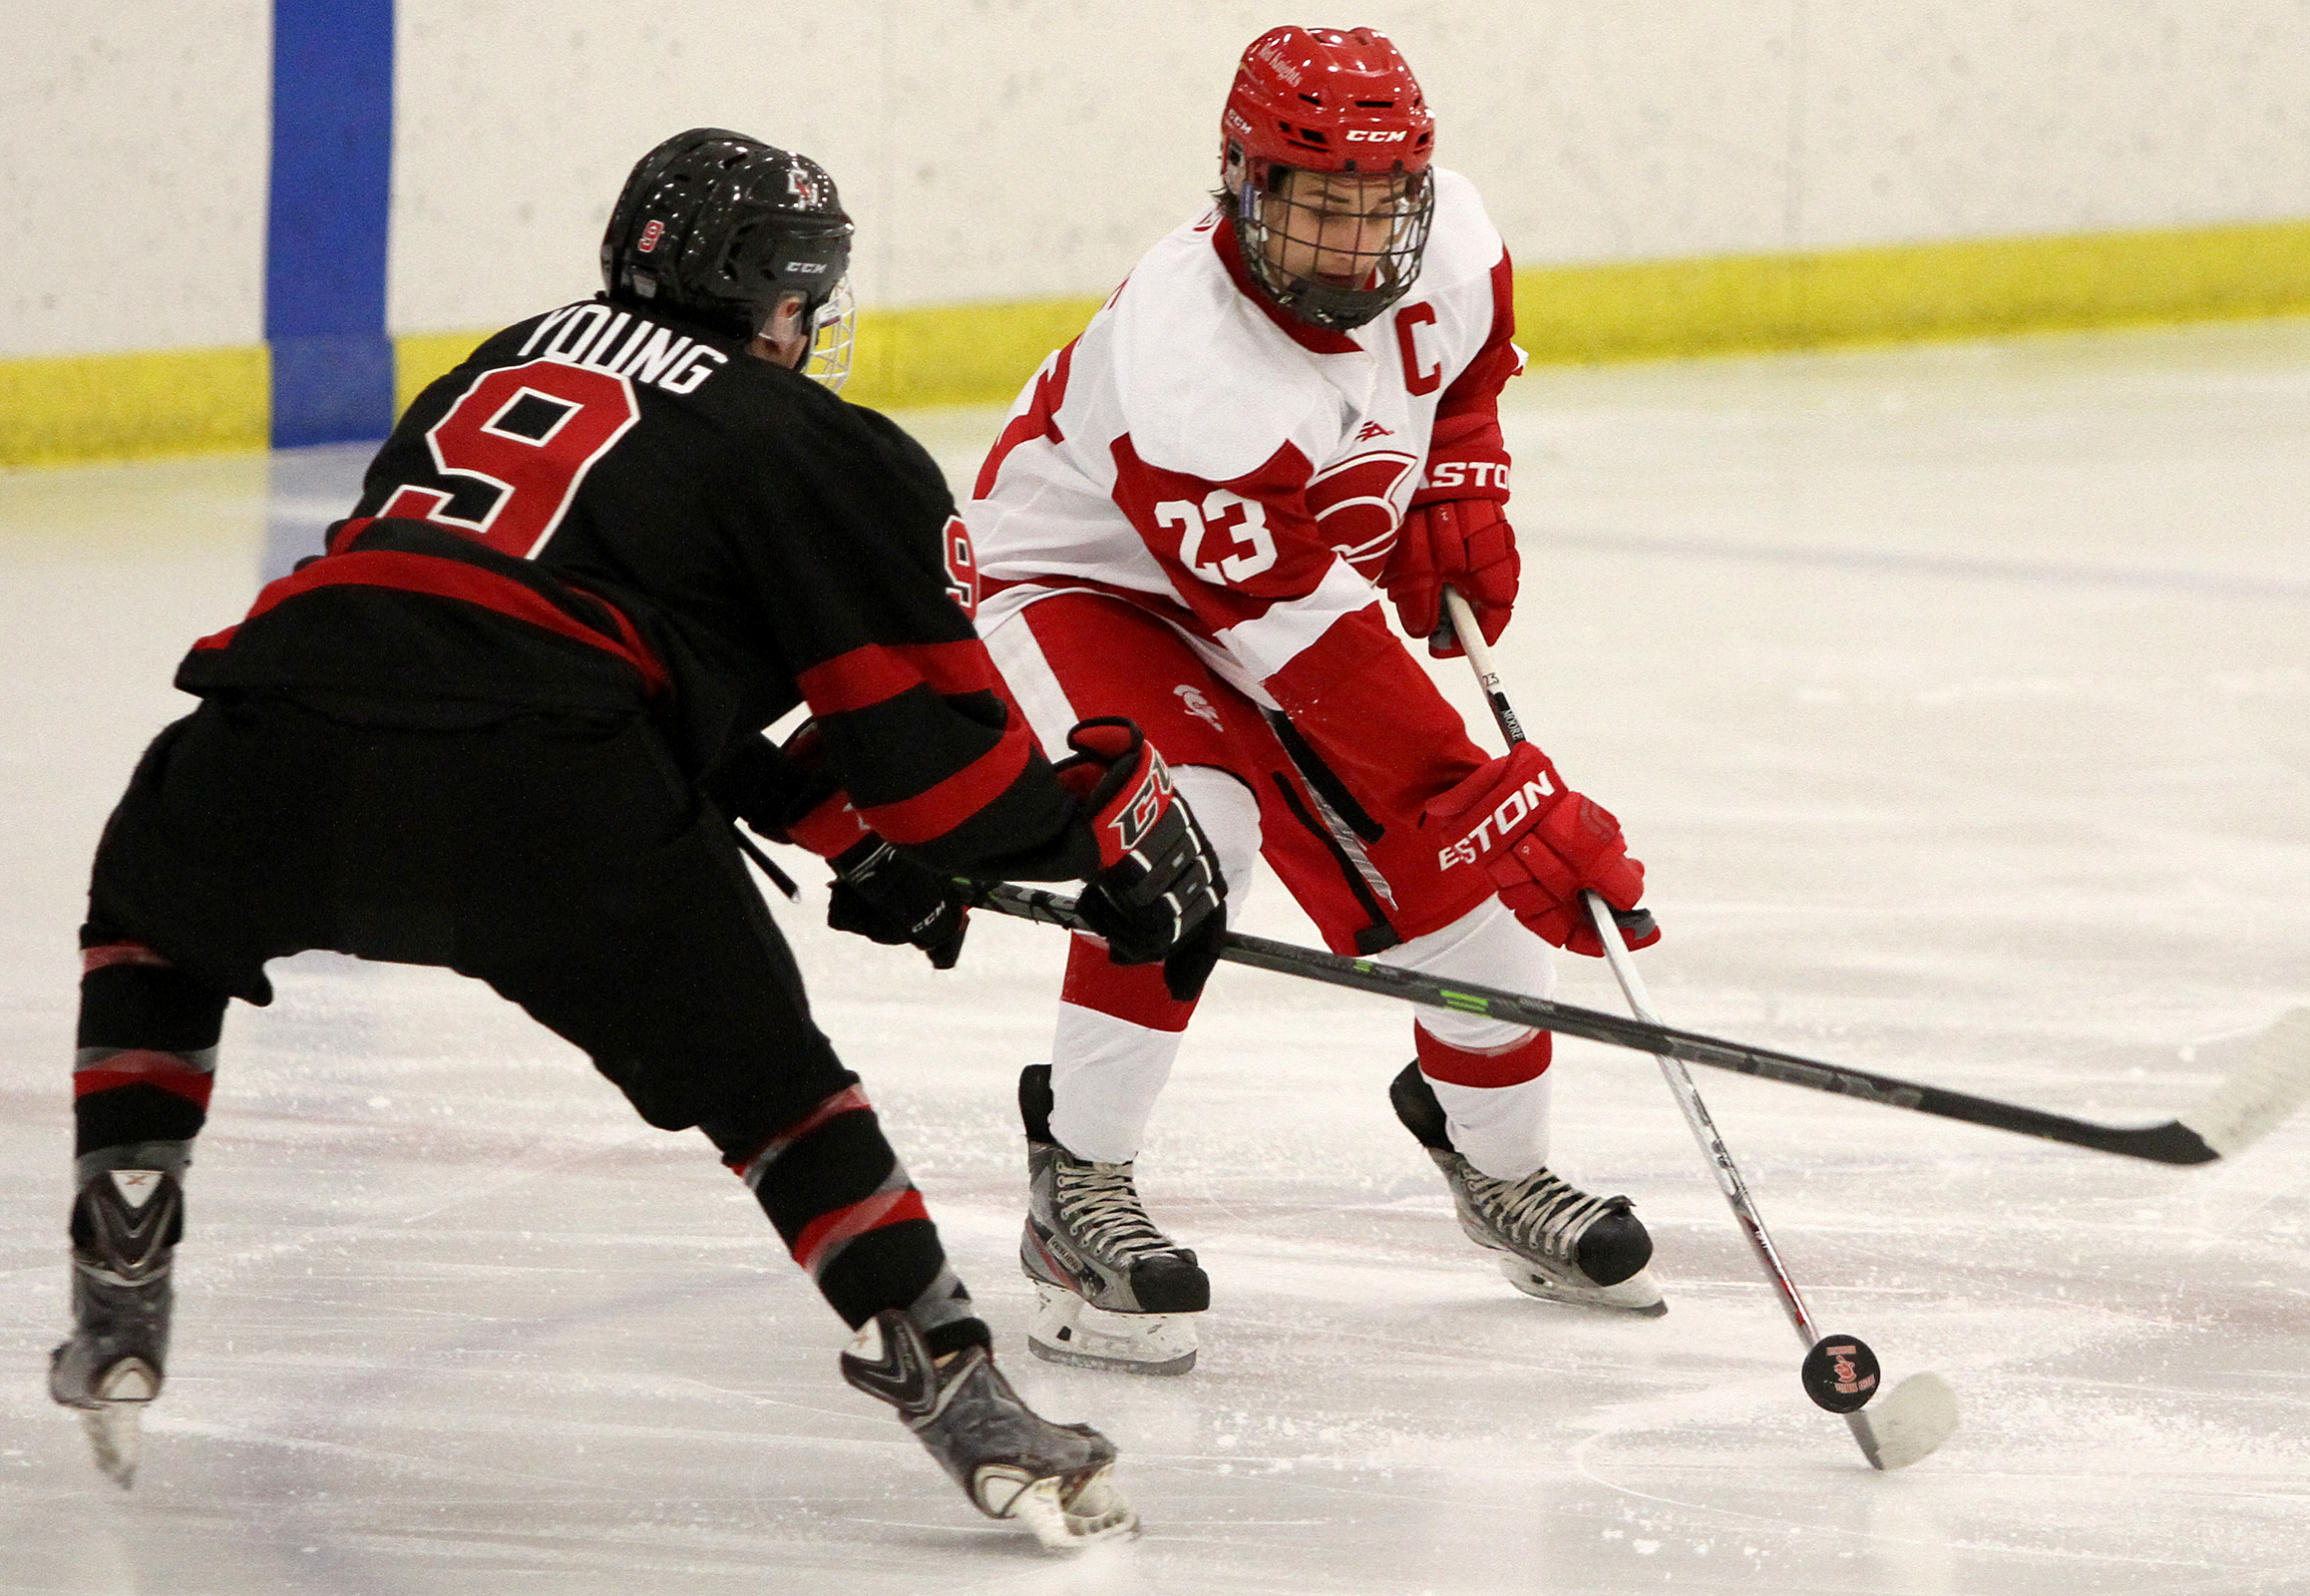 BSM senior Auggie Moore and  Eden Prairie's Wesley Young battle for the puck in the neutral zone in the first period Friday night. Photo by Drew Herron